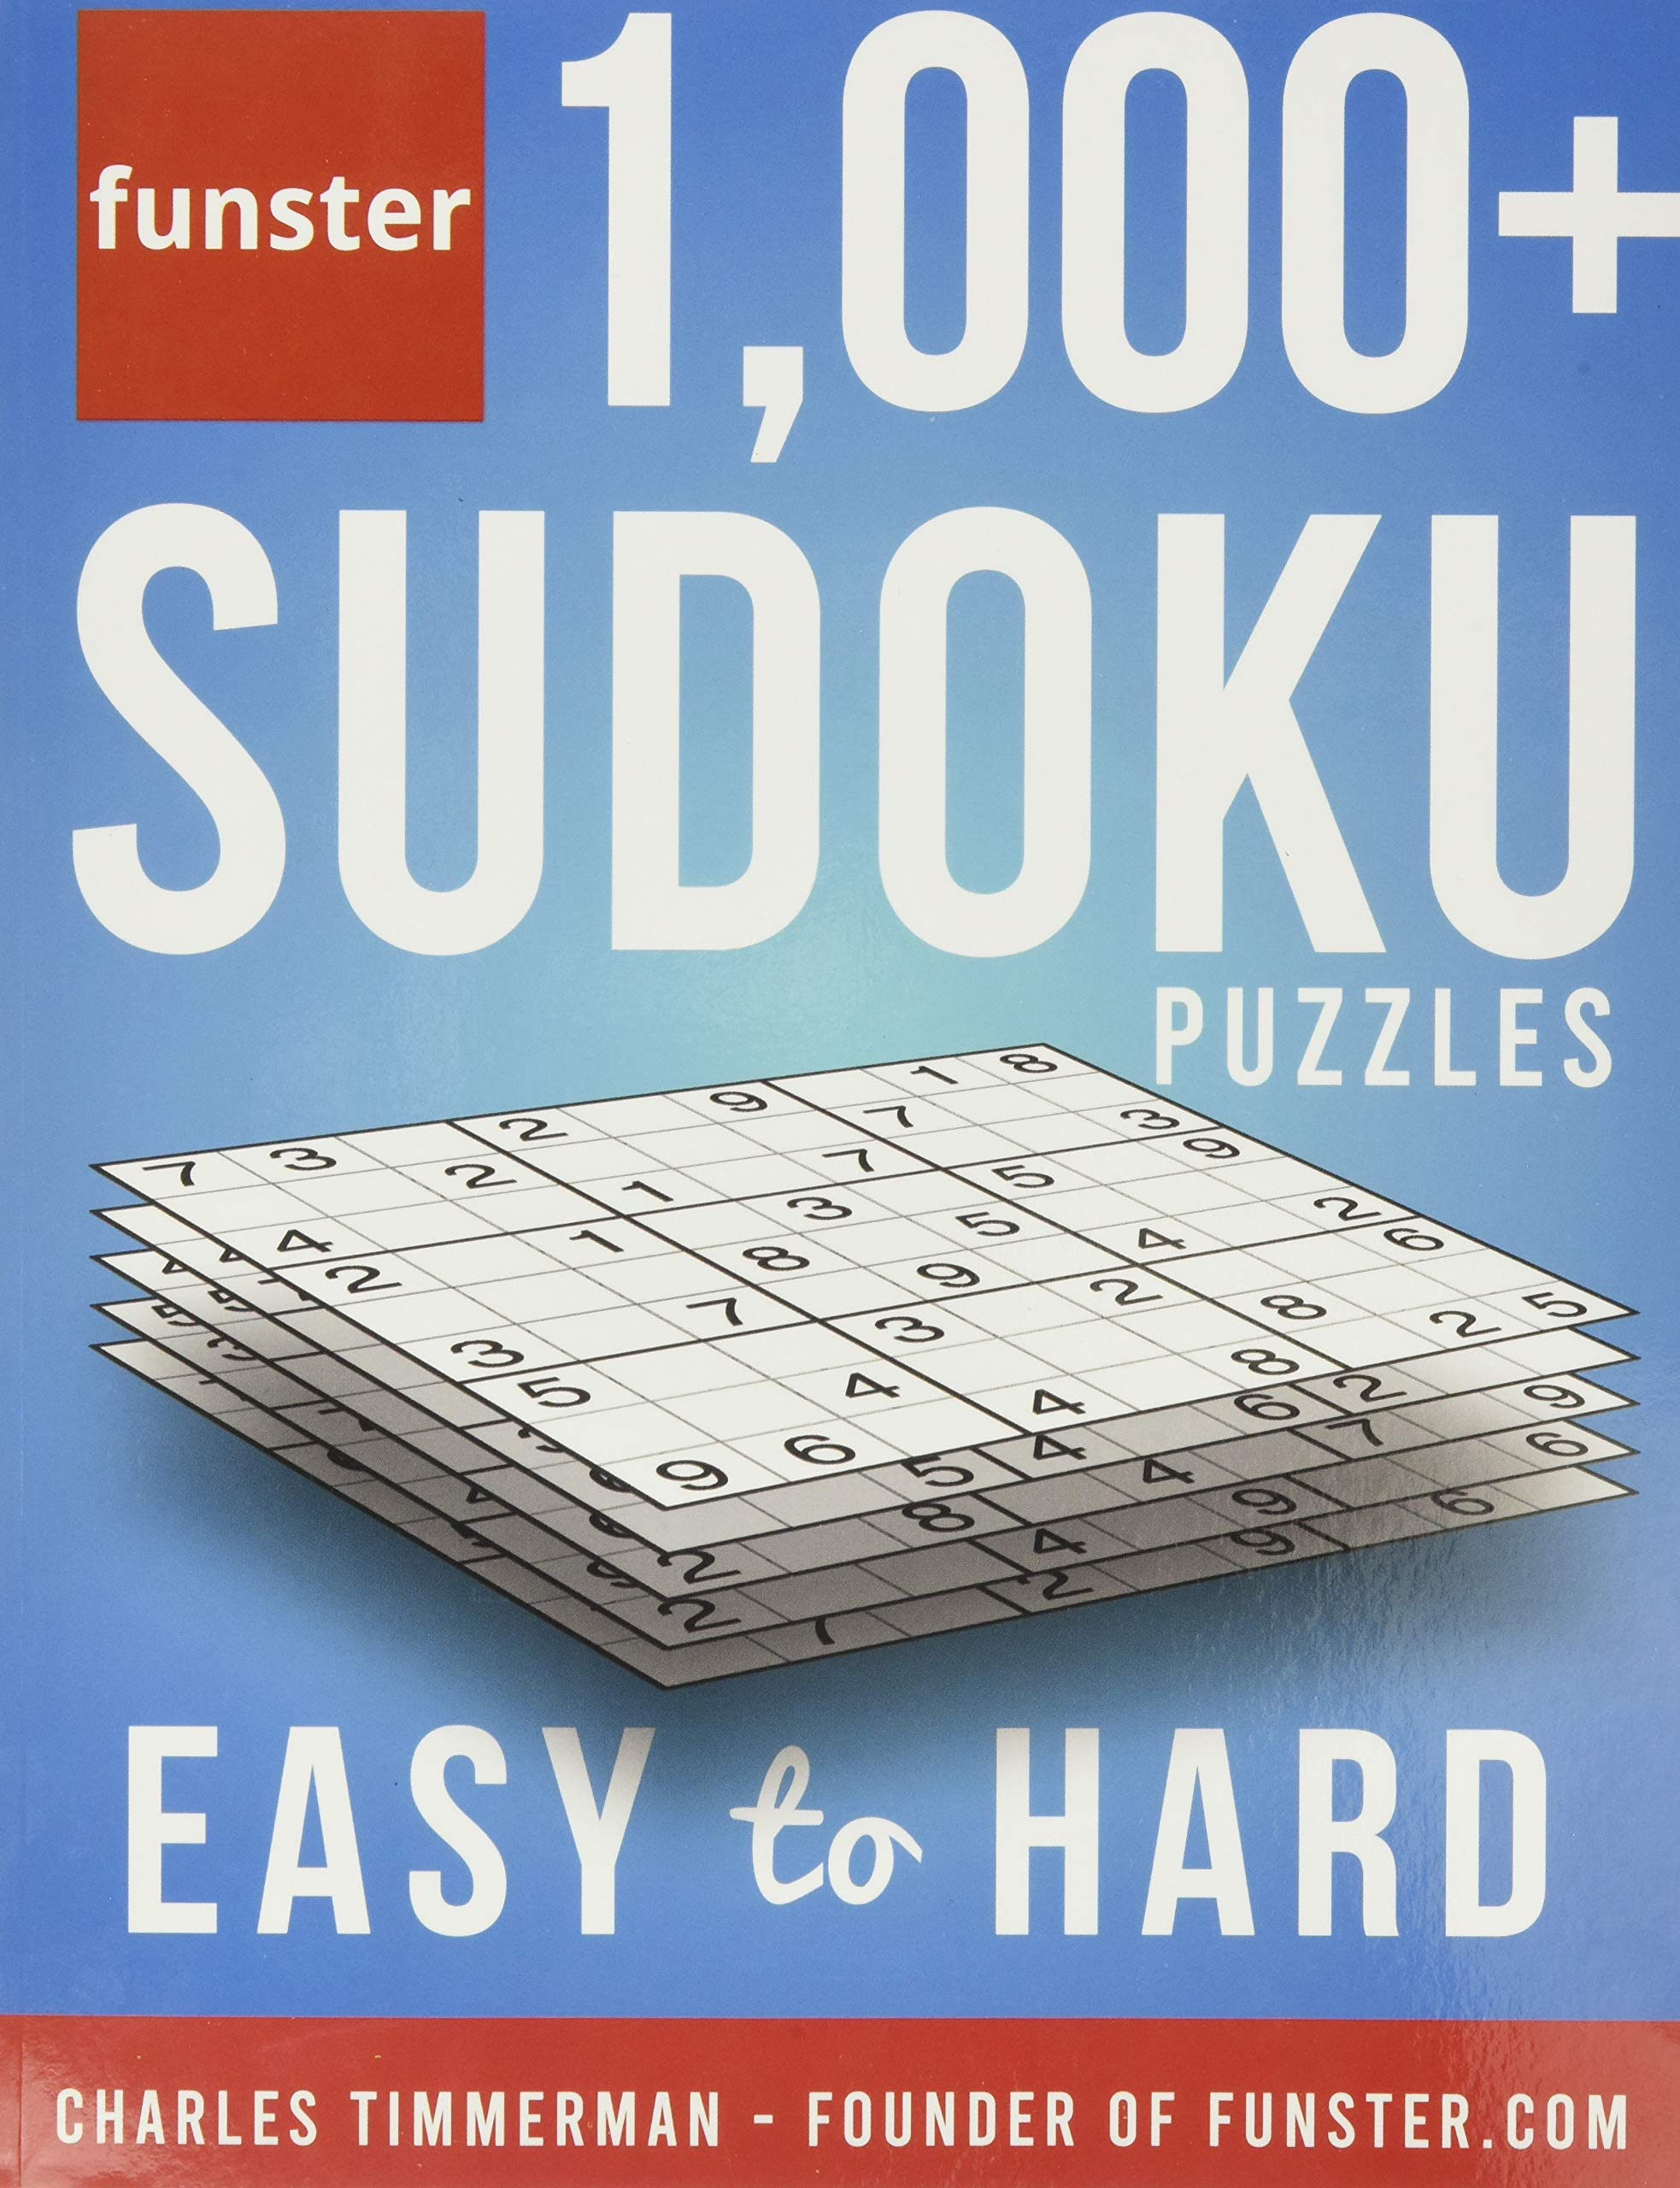 Funster 1,000+ Sudoku Puzzles Easy to Hard: Sudoku puzzle guide for adults